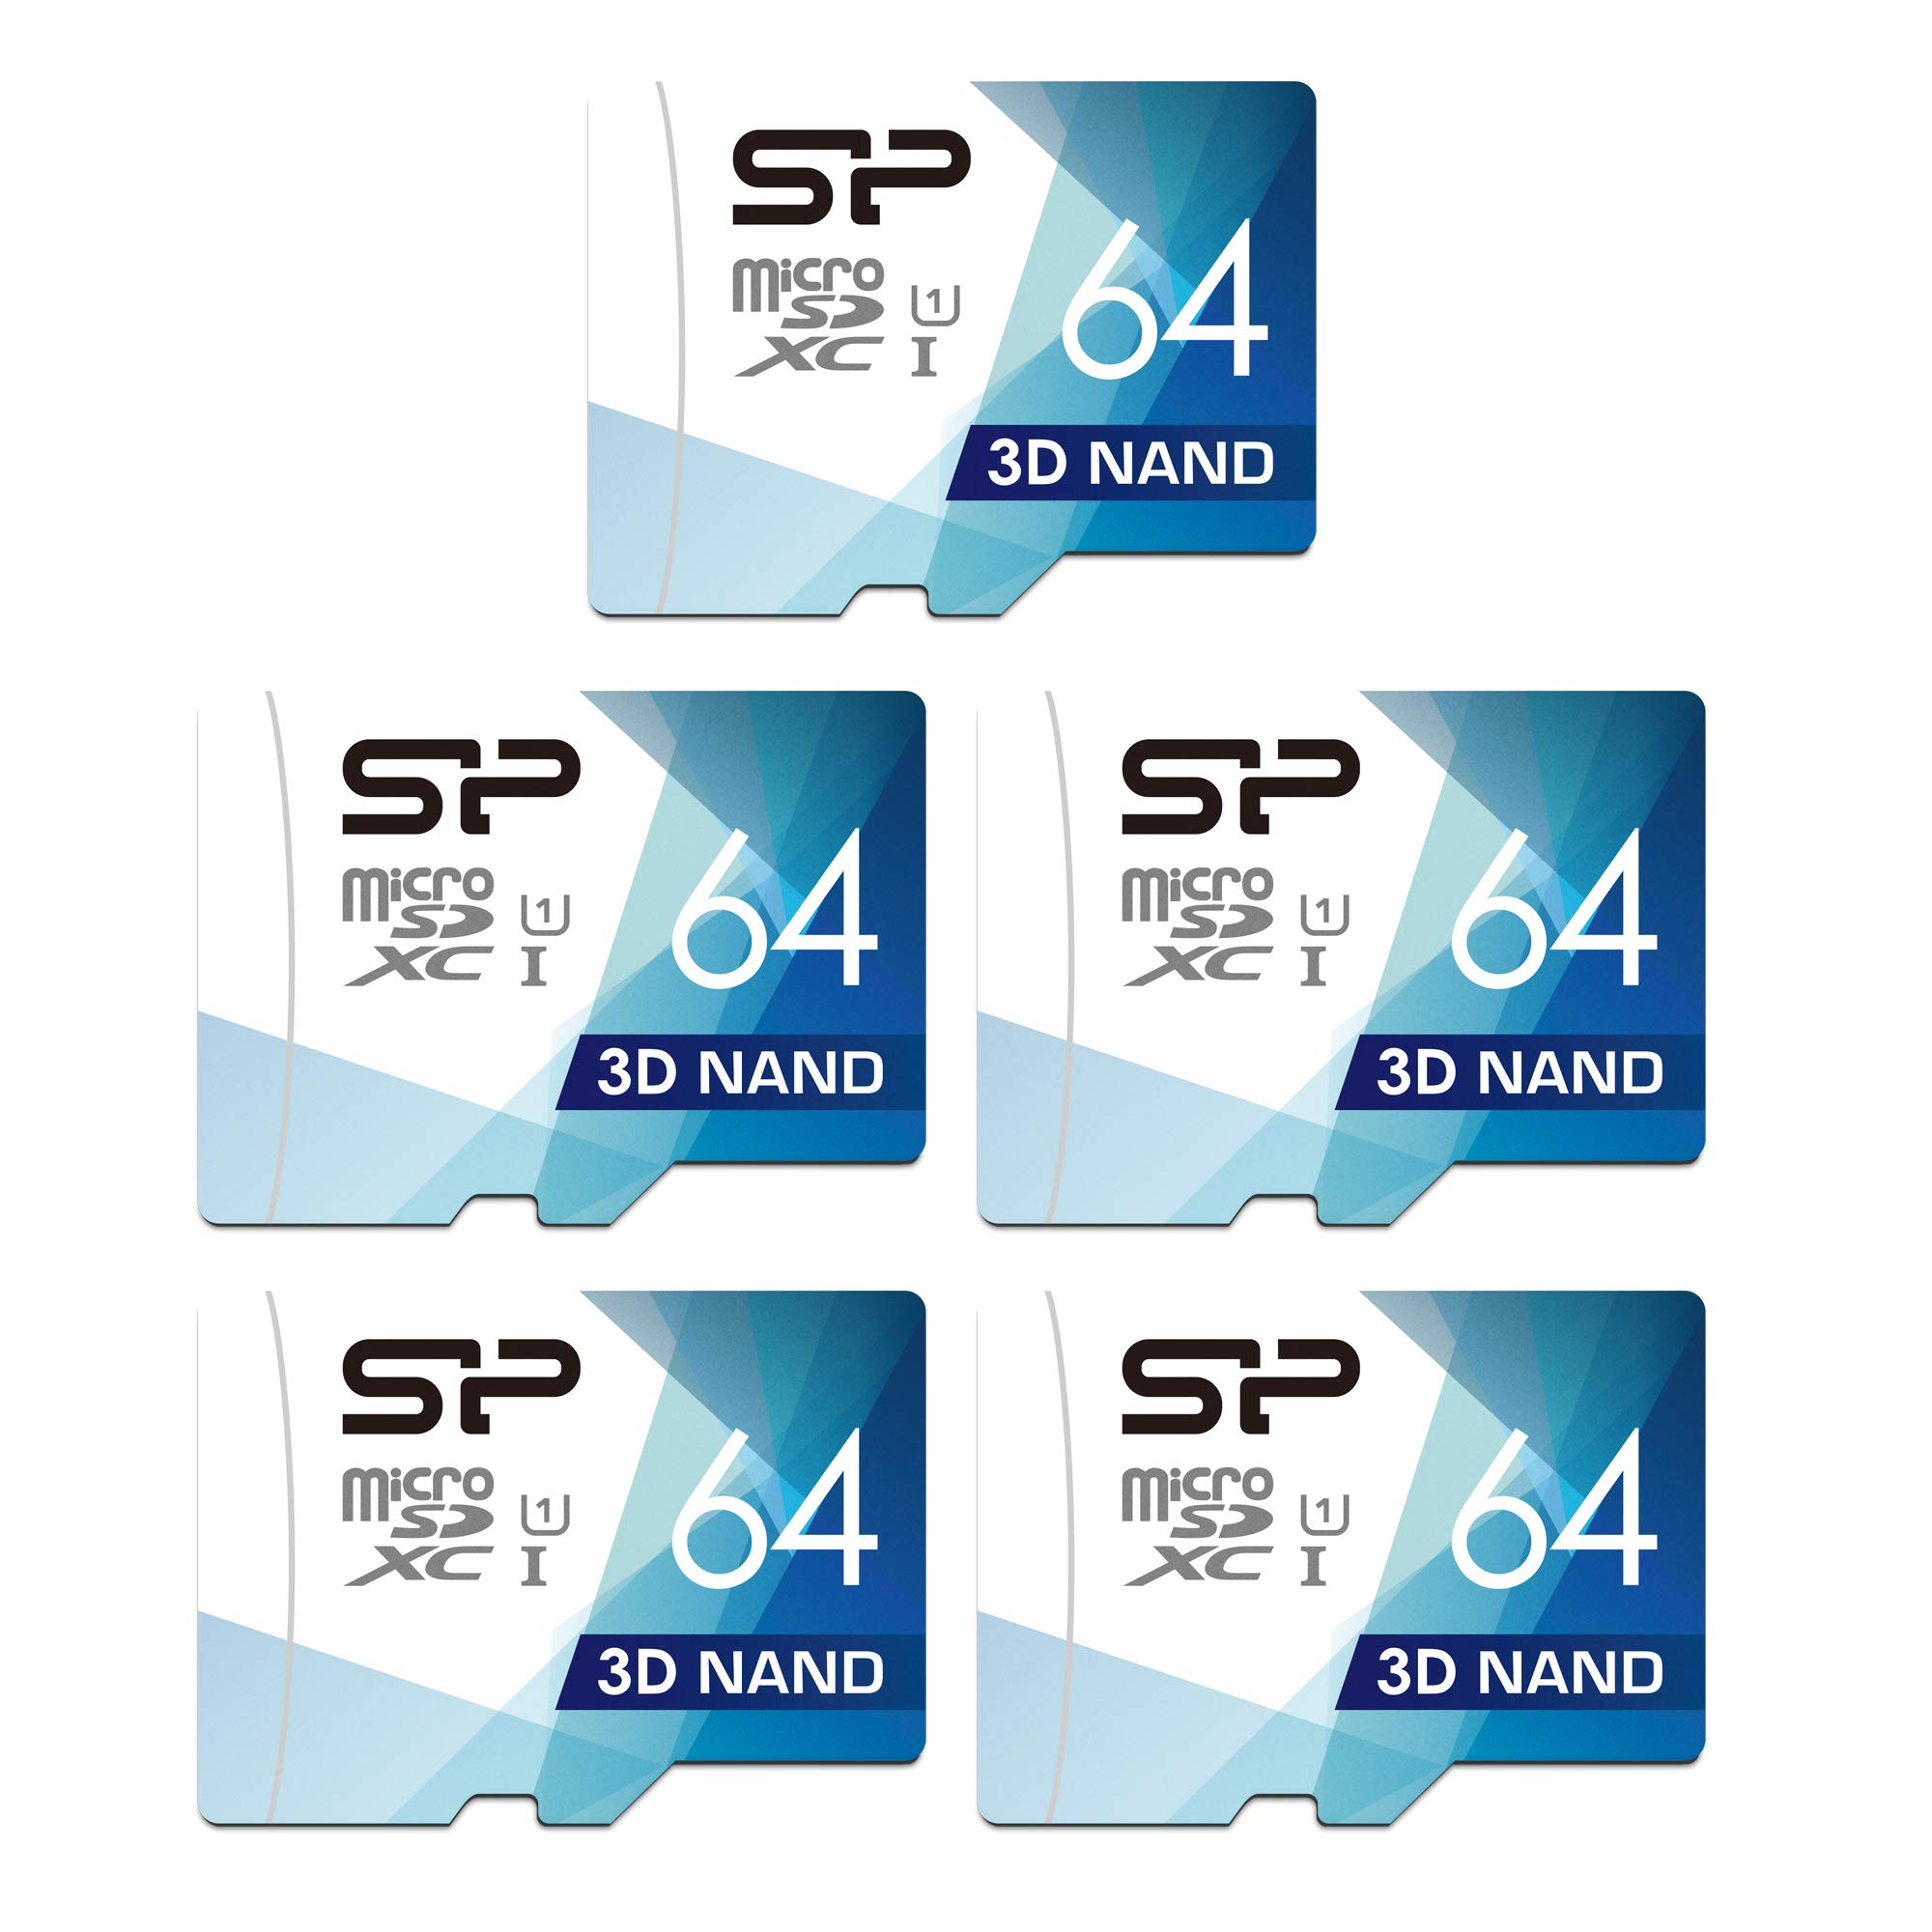 Silicon Power 64GB 5-Pack High Speed MicroSD Card with Adapter by SP Silicon Power